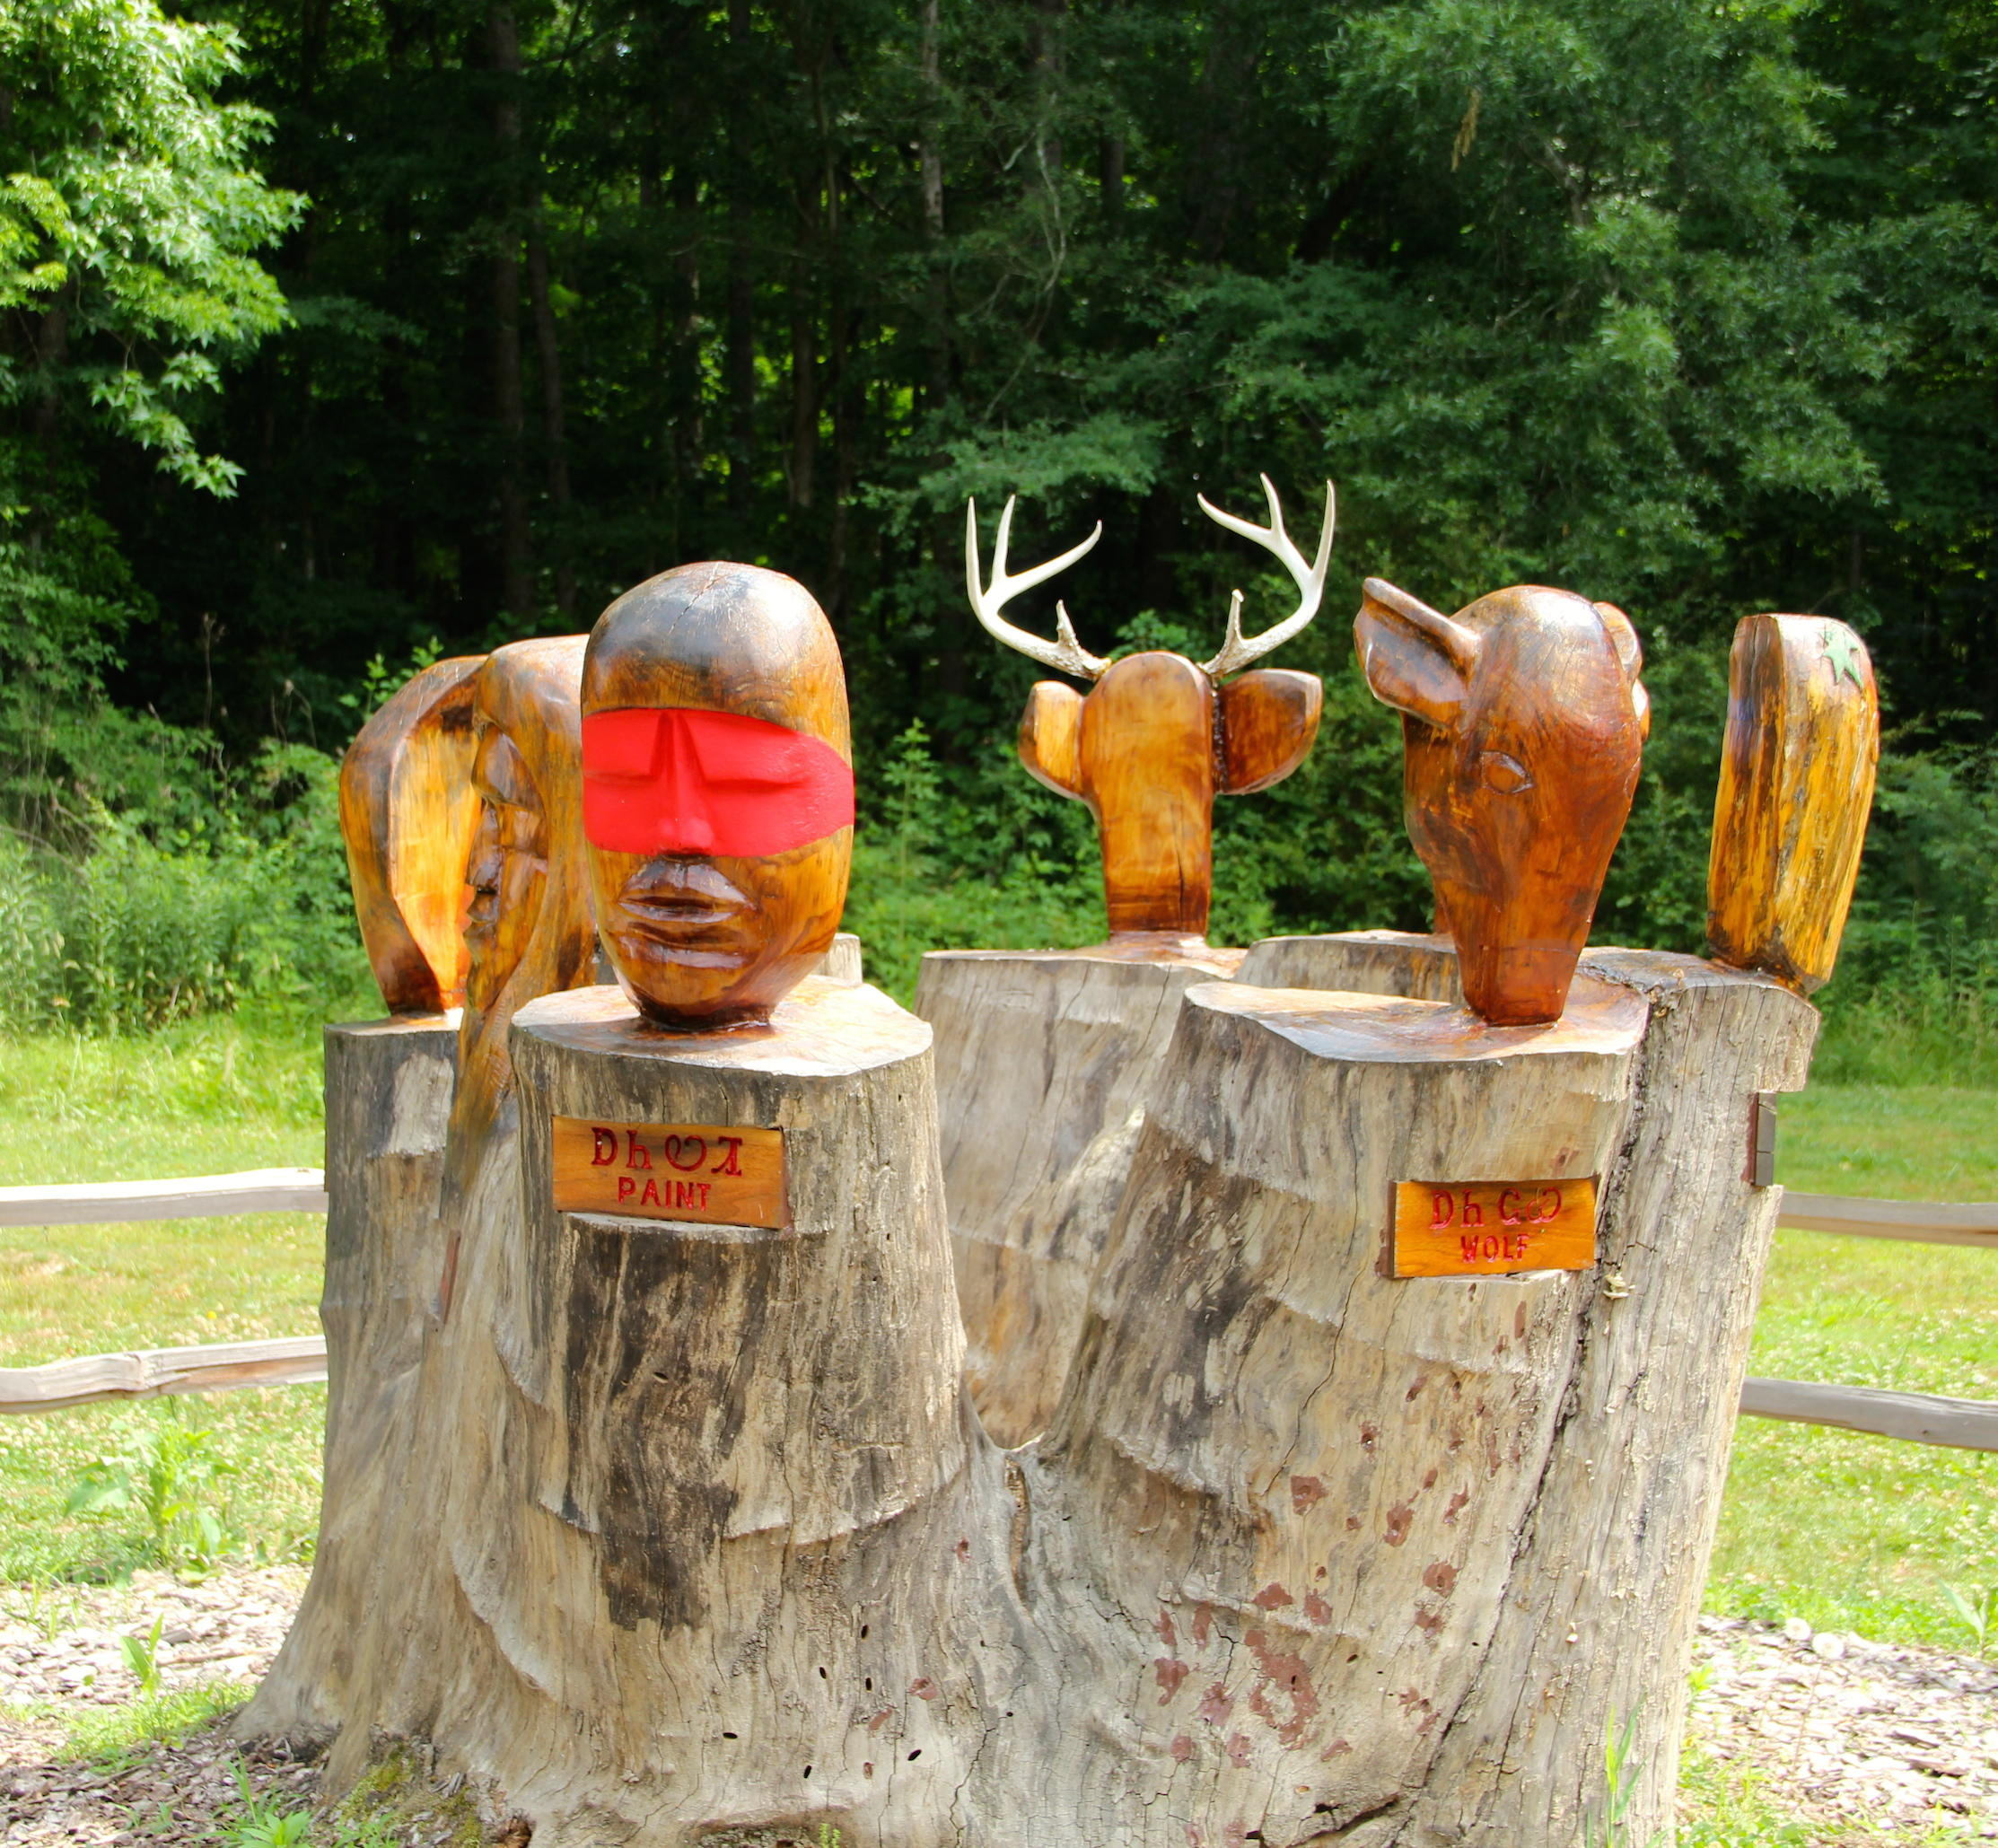 A trail of tears legacy embracing cherokee culture in tennessee kcbx seven cherokee clans depicted in stump of tulip tree at red clay state park publicscrutiny Image collections